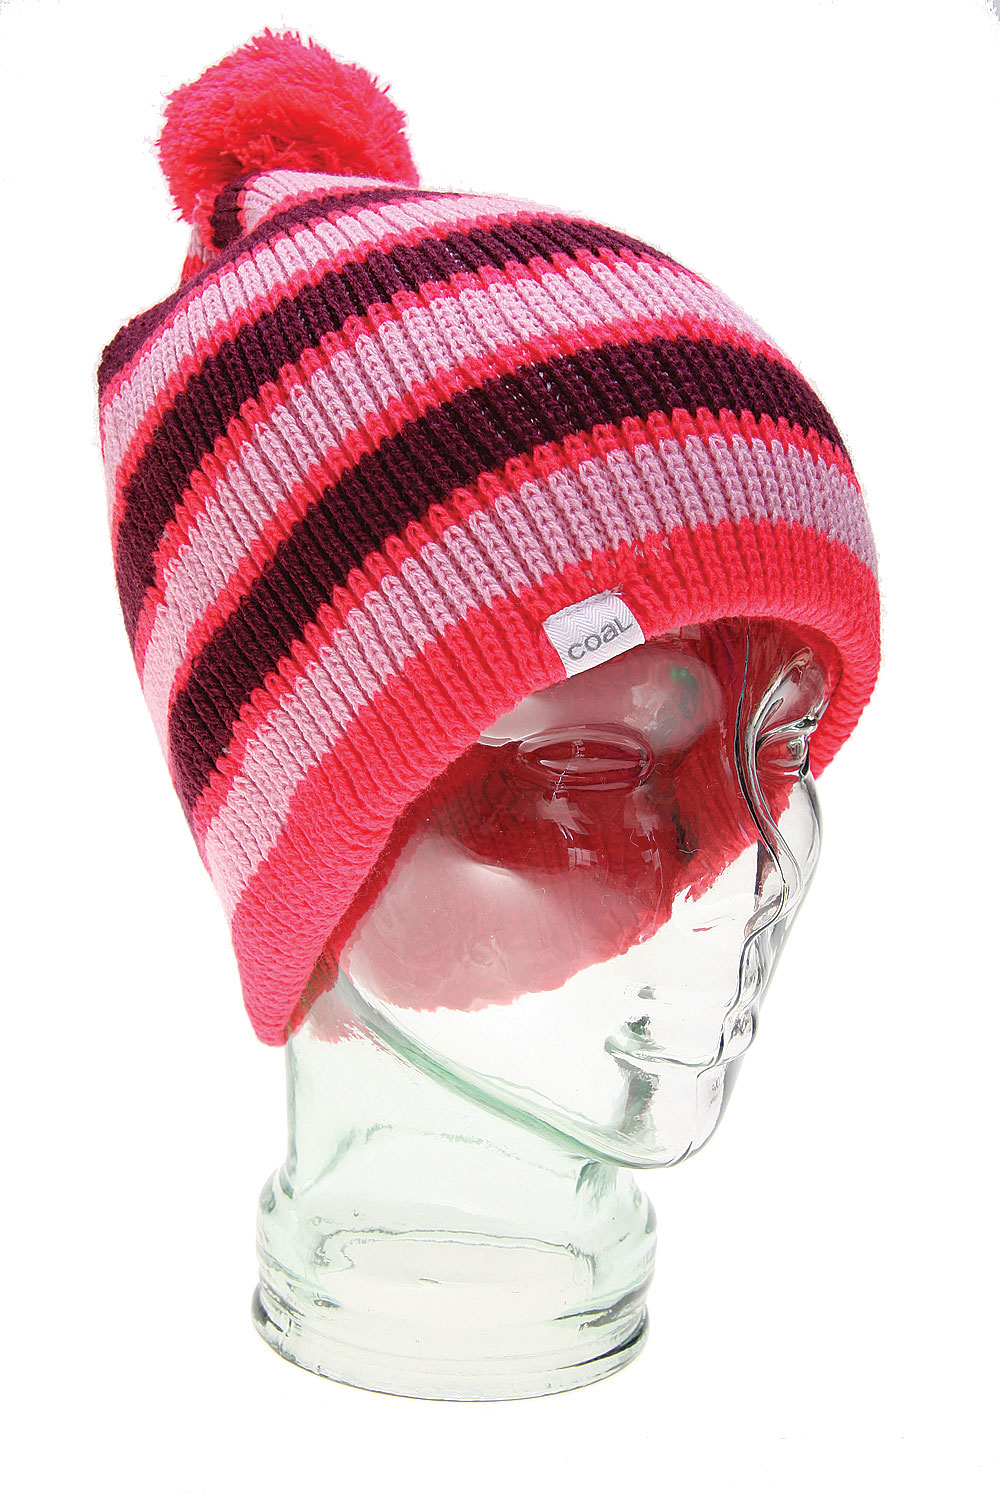 The Coal The Revert Beanie - Pop Colors and Stripes on the Outside, Solid Colors are Contrast Stitching on the Inside. A Reversible Beanie with Removable Pom Pom Options / Cashmere - Like AcrylicCashmere-like Acrylic - $16.95